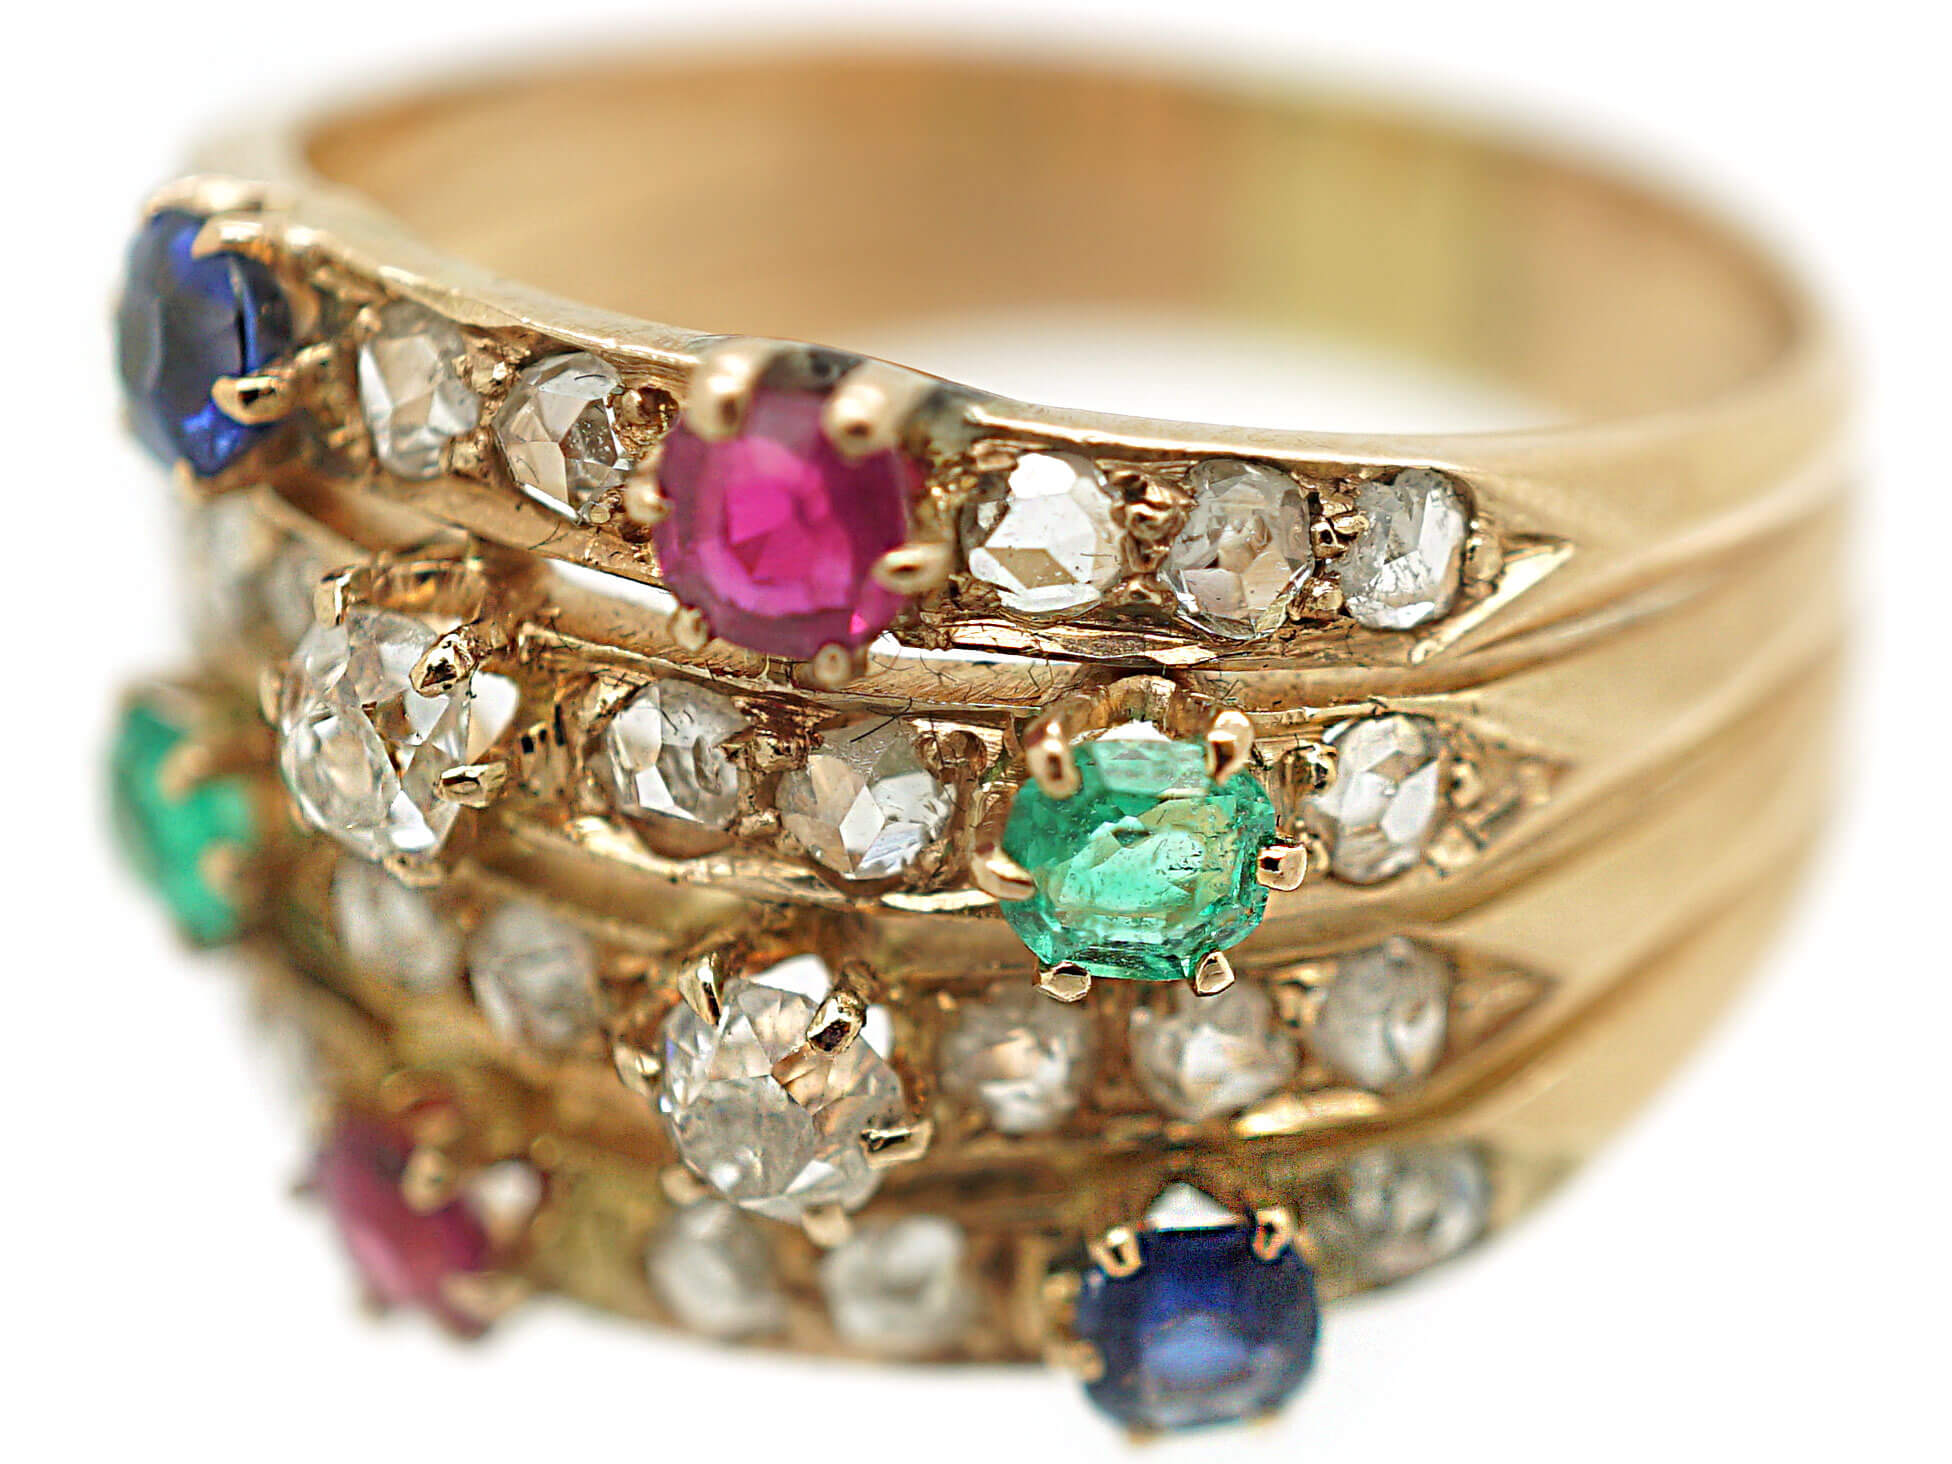 14ct Gold Harem Ring set with Rubies, Sapphires, Emeralds & Diamonds